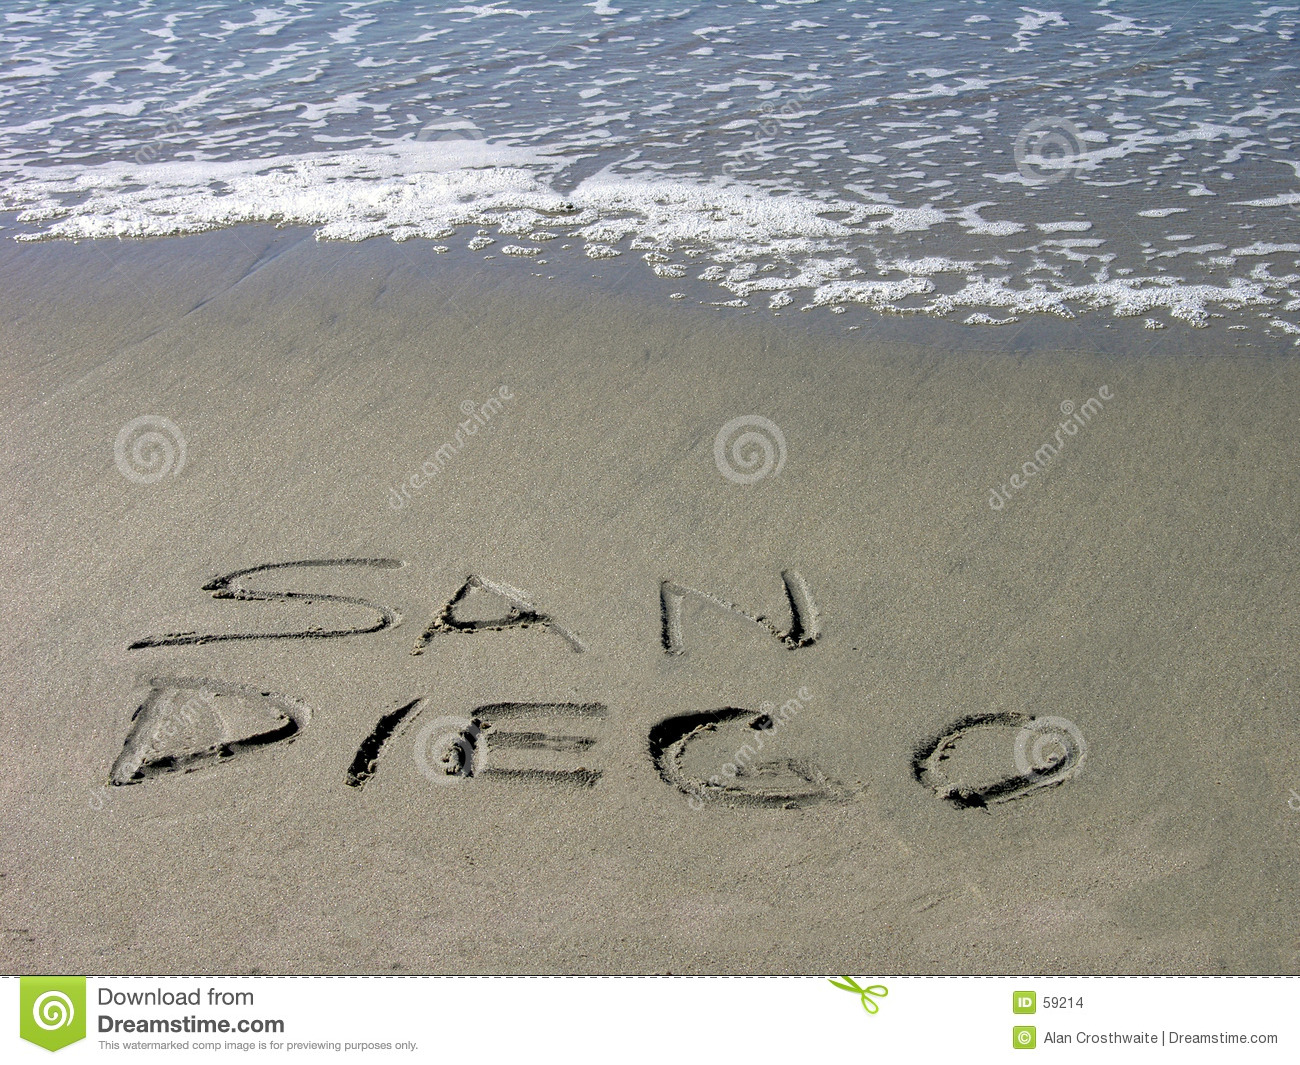 San Diego Welcomes You